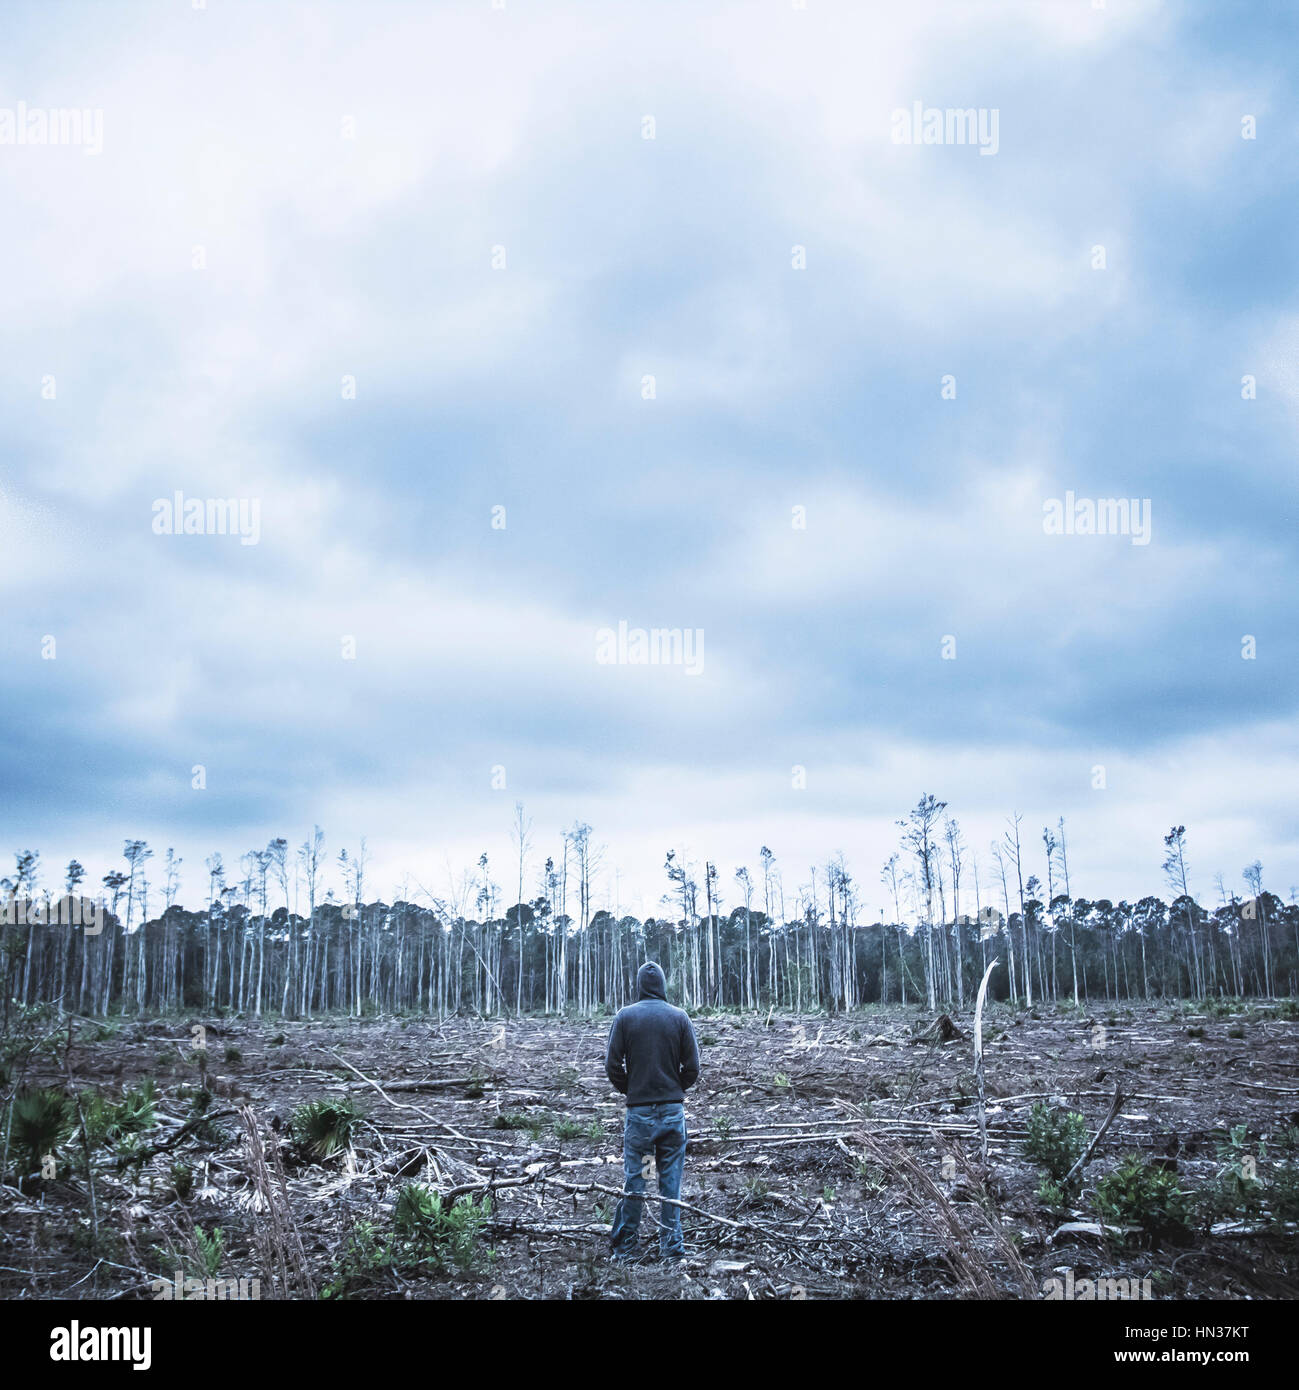 man standing alone among a scene of deforestation - Stock Image